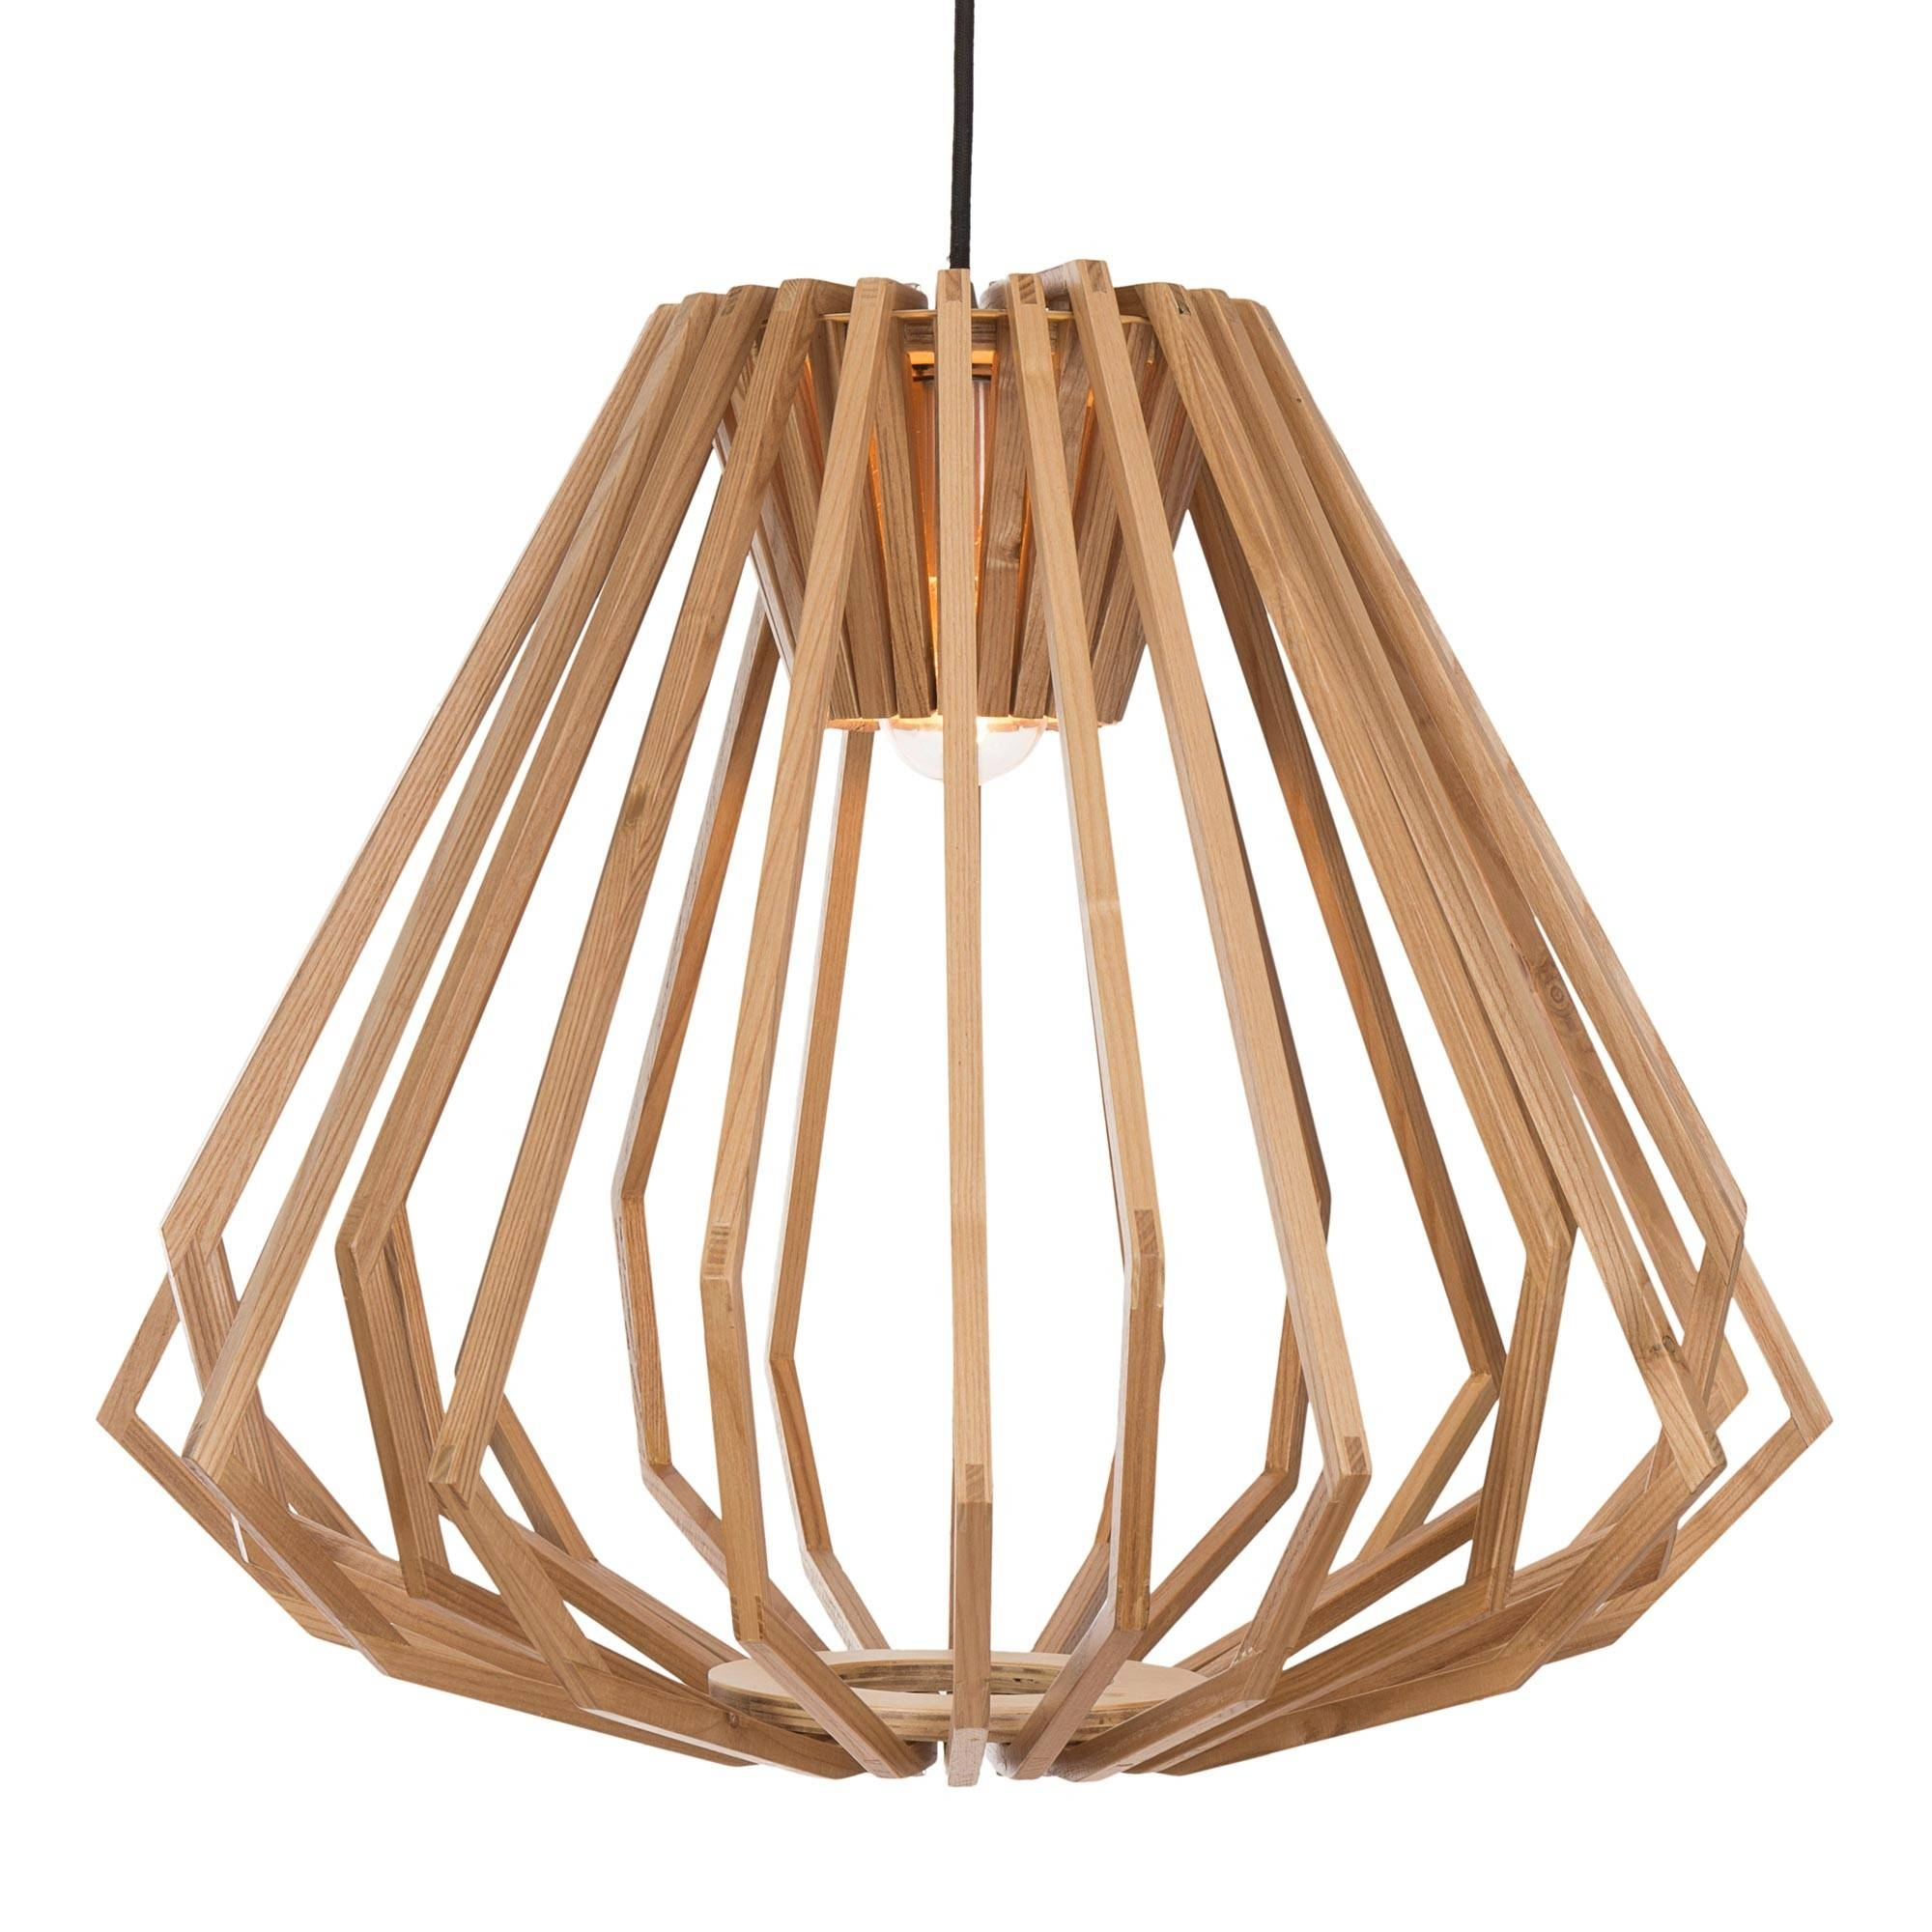 Crecy Pendant Lamp, Natural with regard to Natural Pendant Lights (Image 5 of 15)